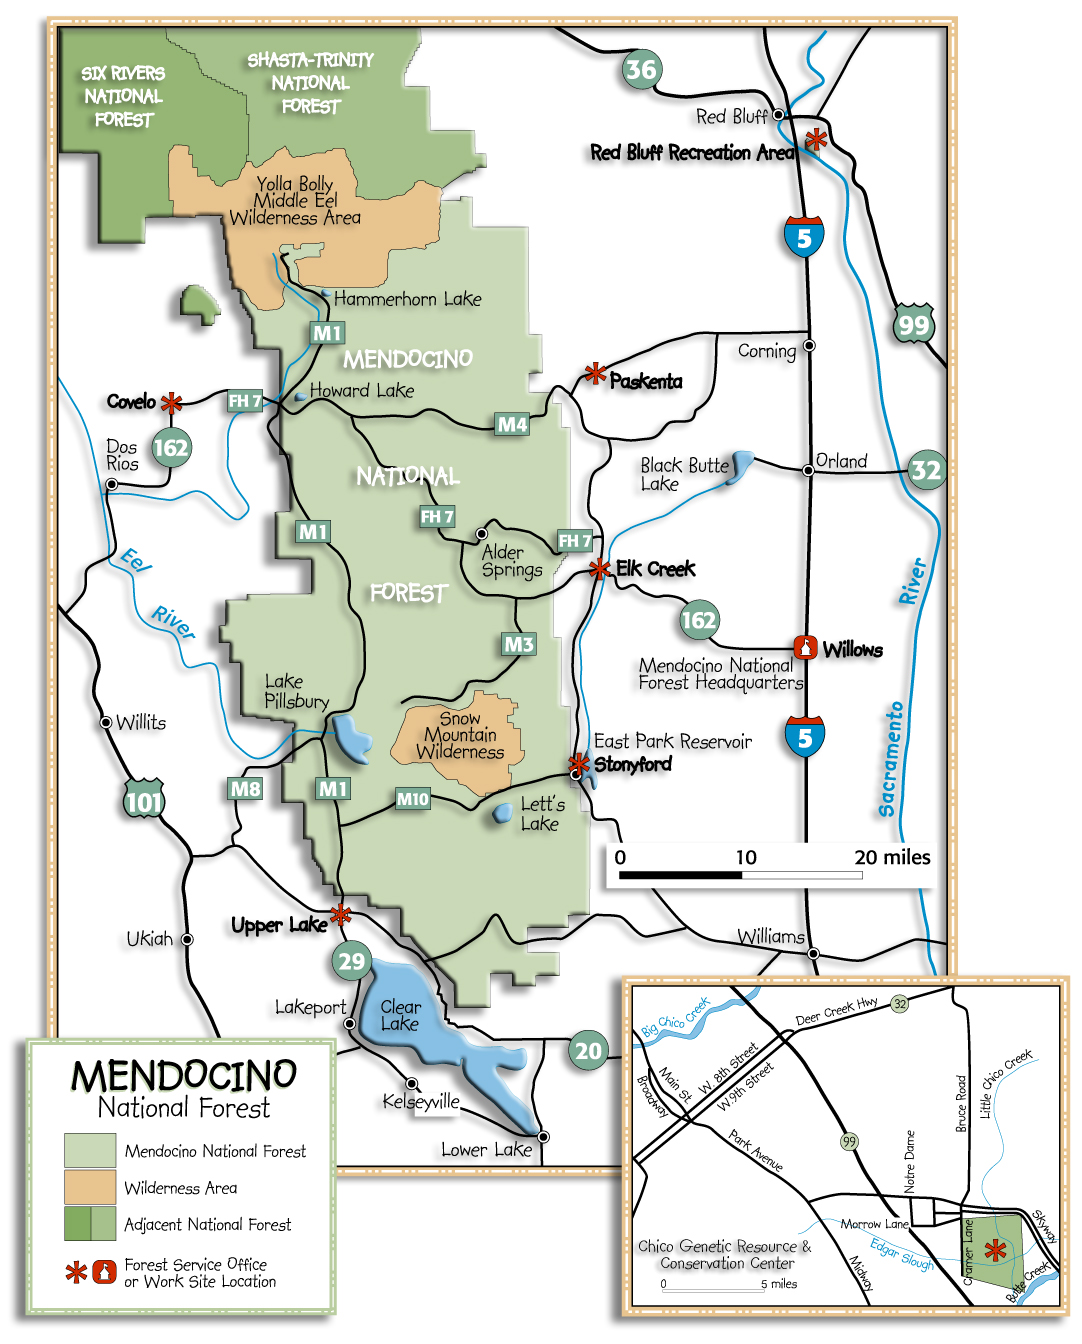 [Graphic]: Map displaying the Mendocino National Forest and surrounding area.